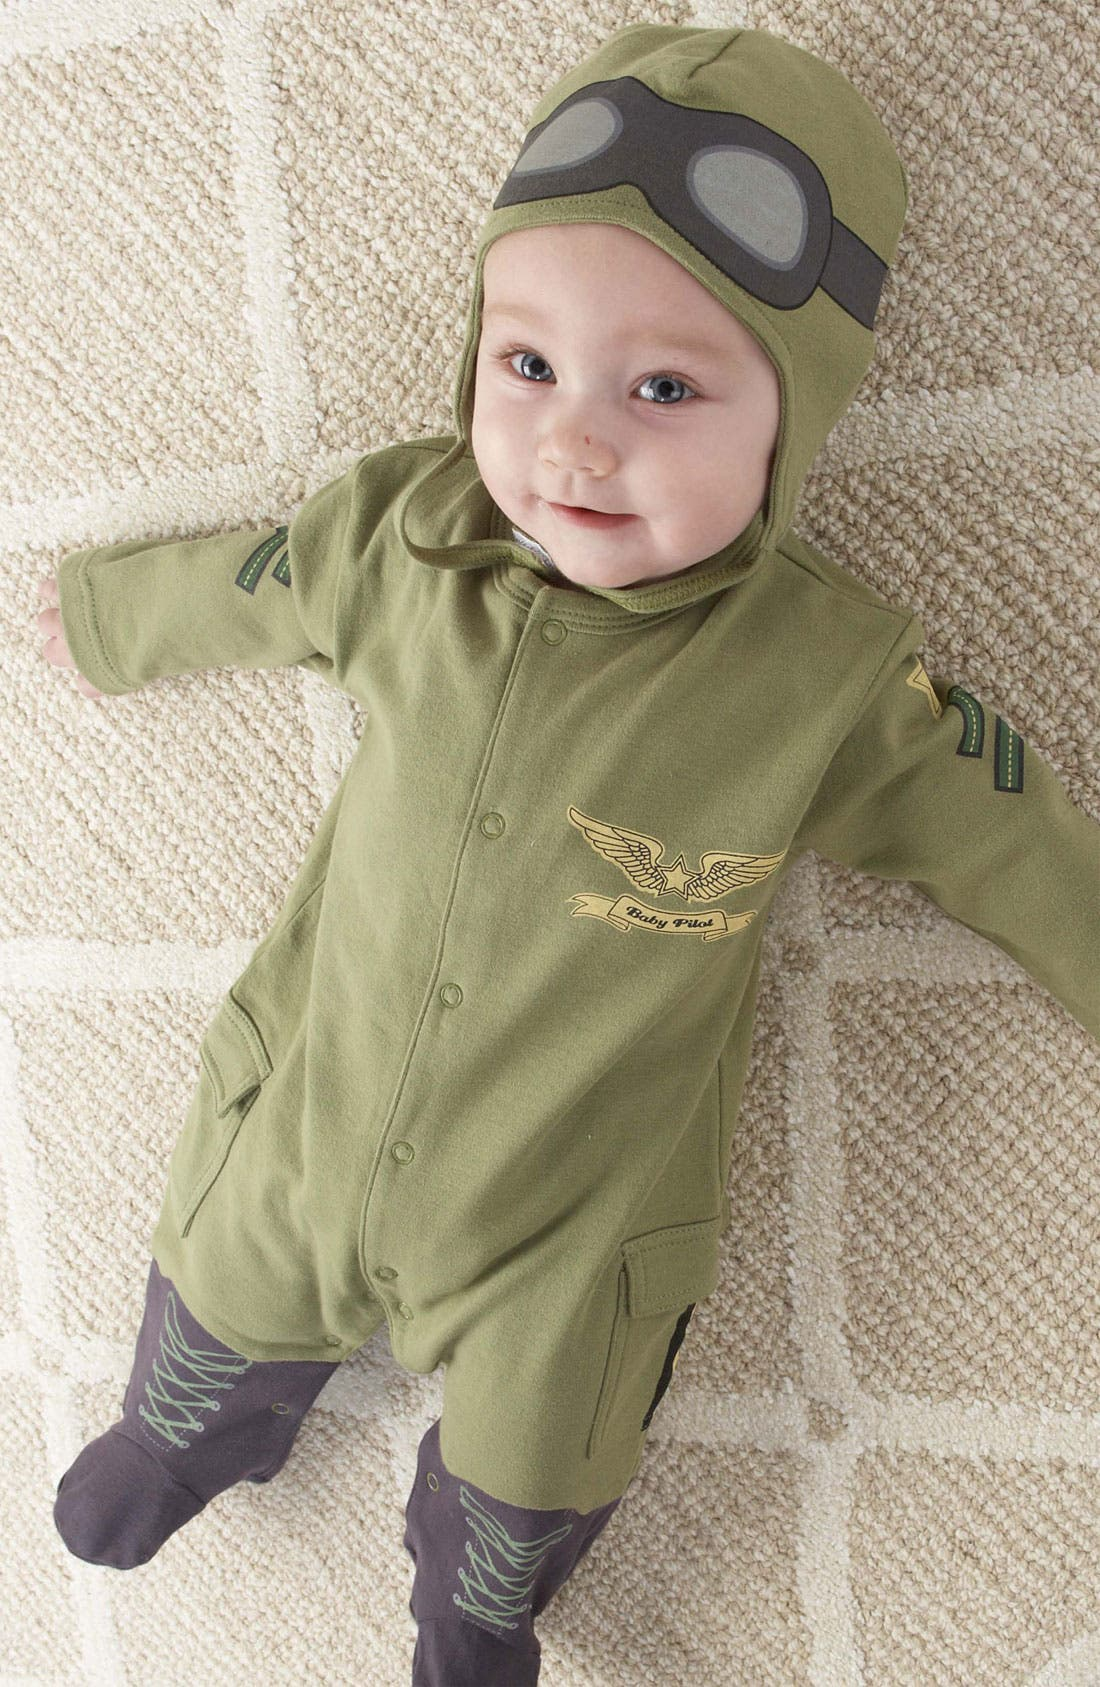 Alternate Image 1 Selected - Baby Aspen 'Pilot' Footie & Hat (Baby)